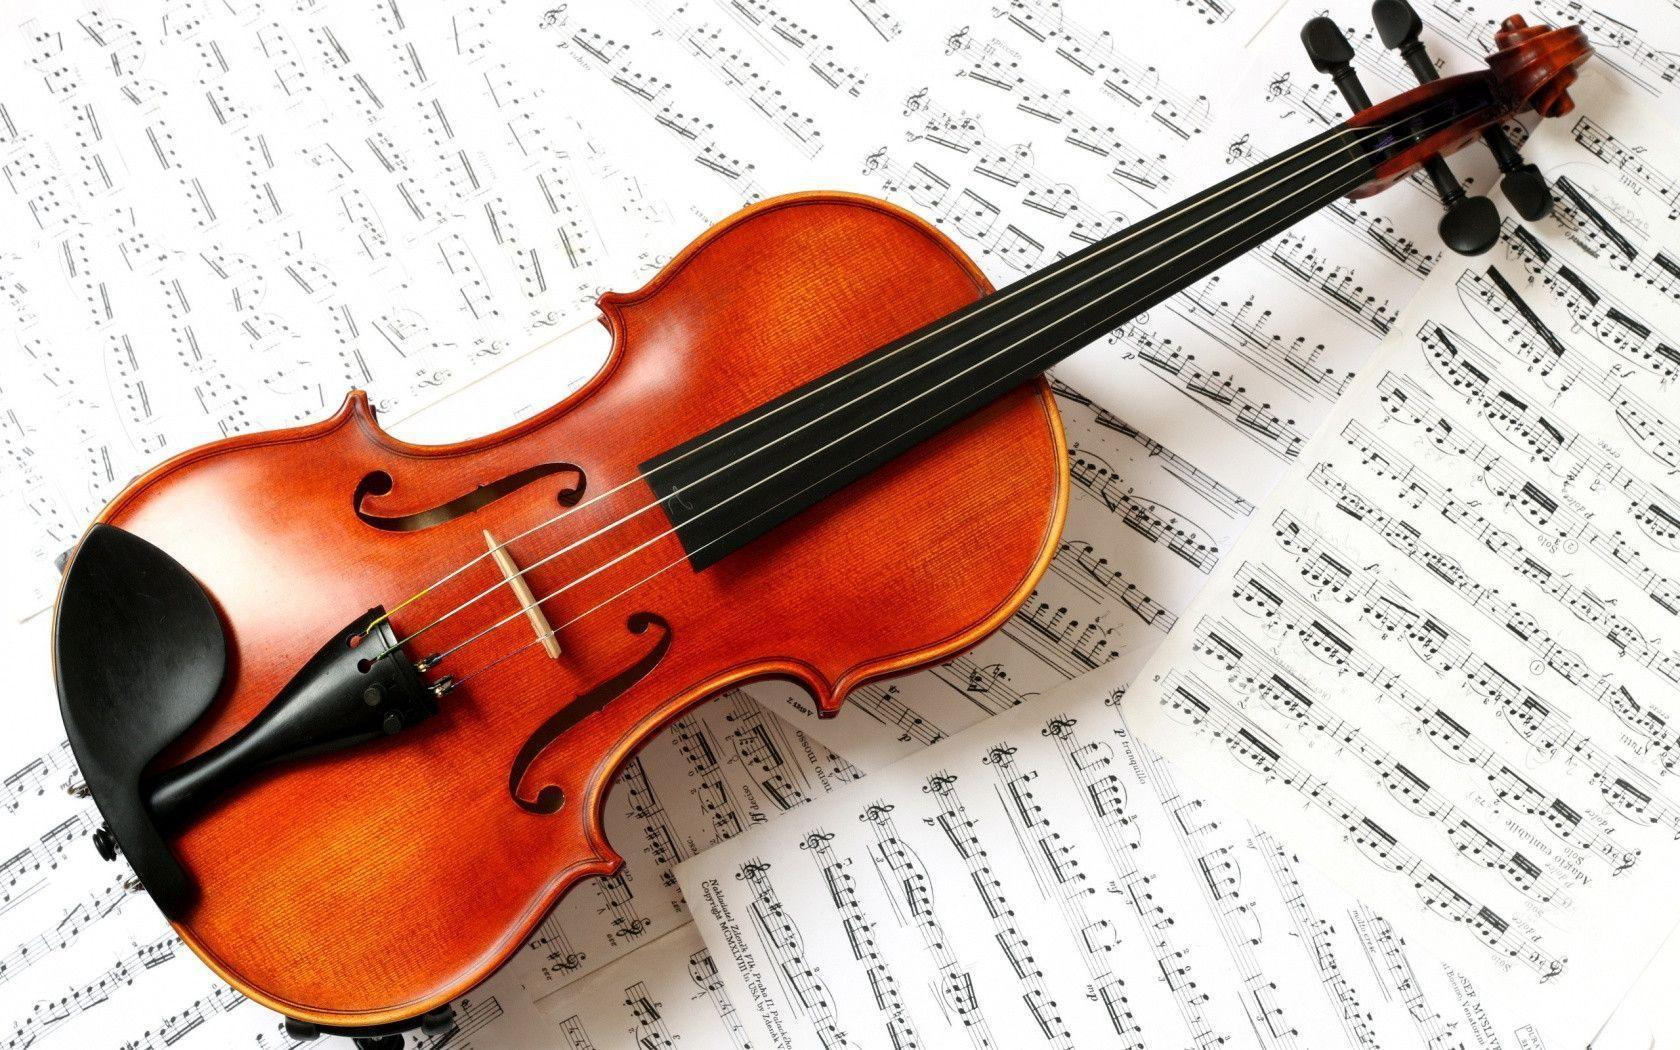 1680x1050 Violin Wallpaper